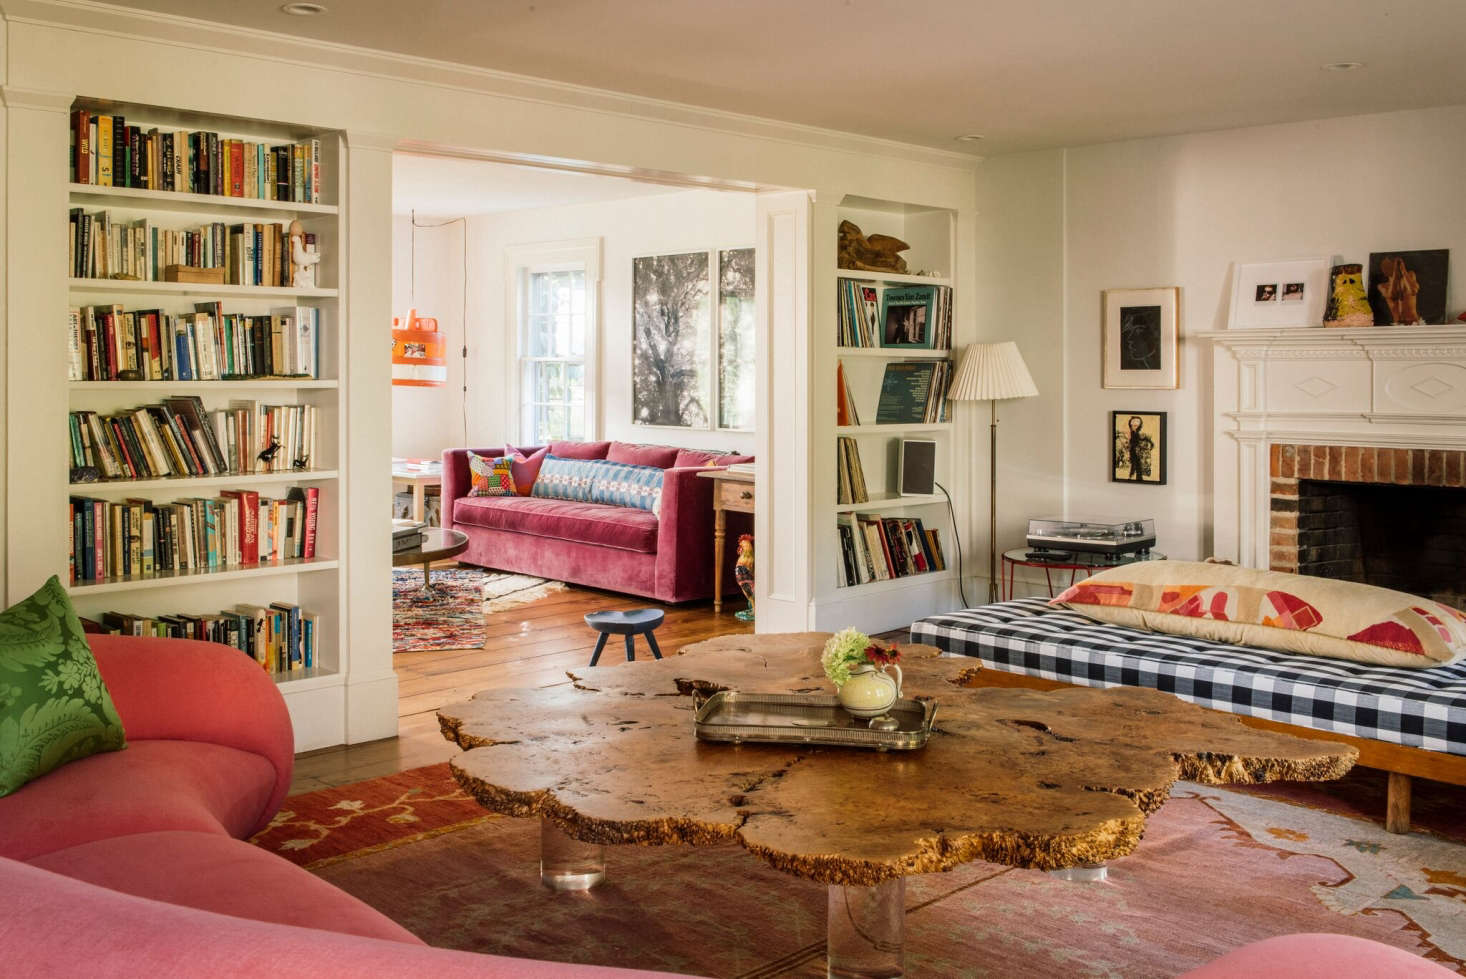 'Weirdness and Charm' in an Upstate New York Farmhouse